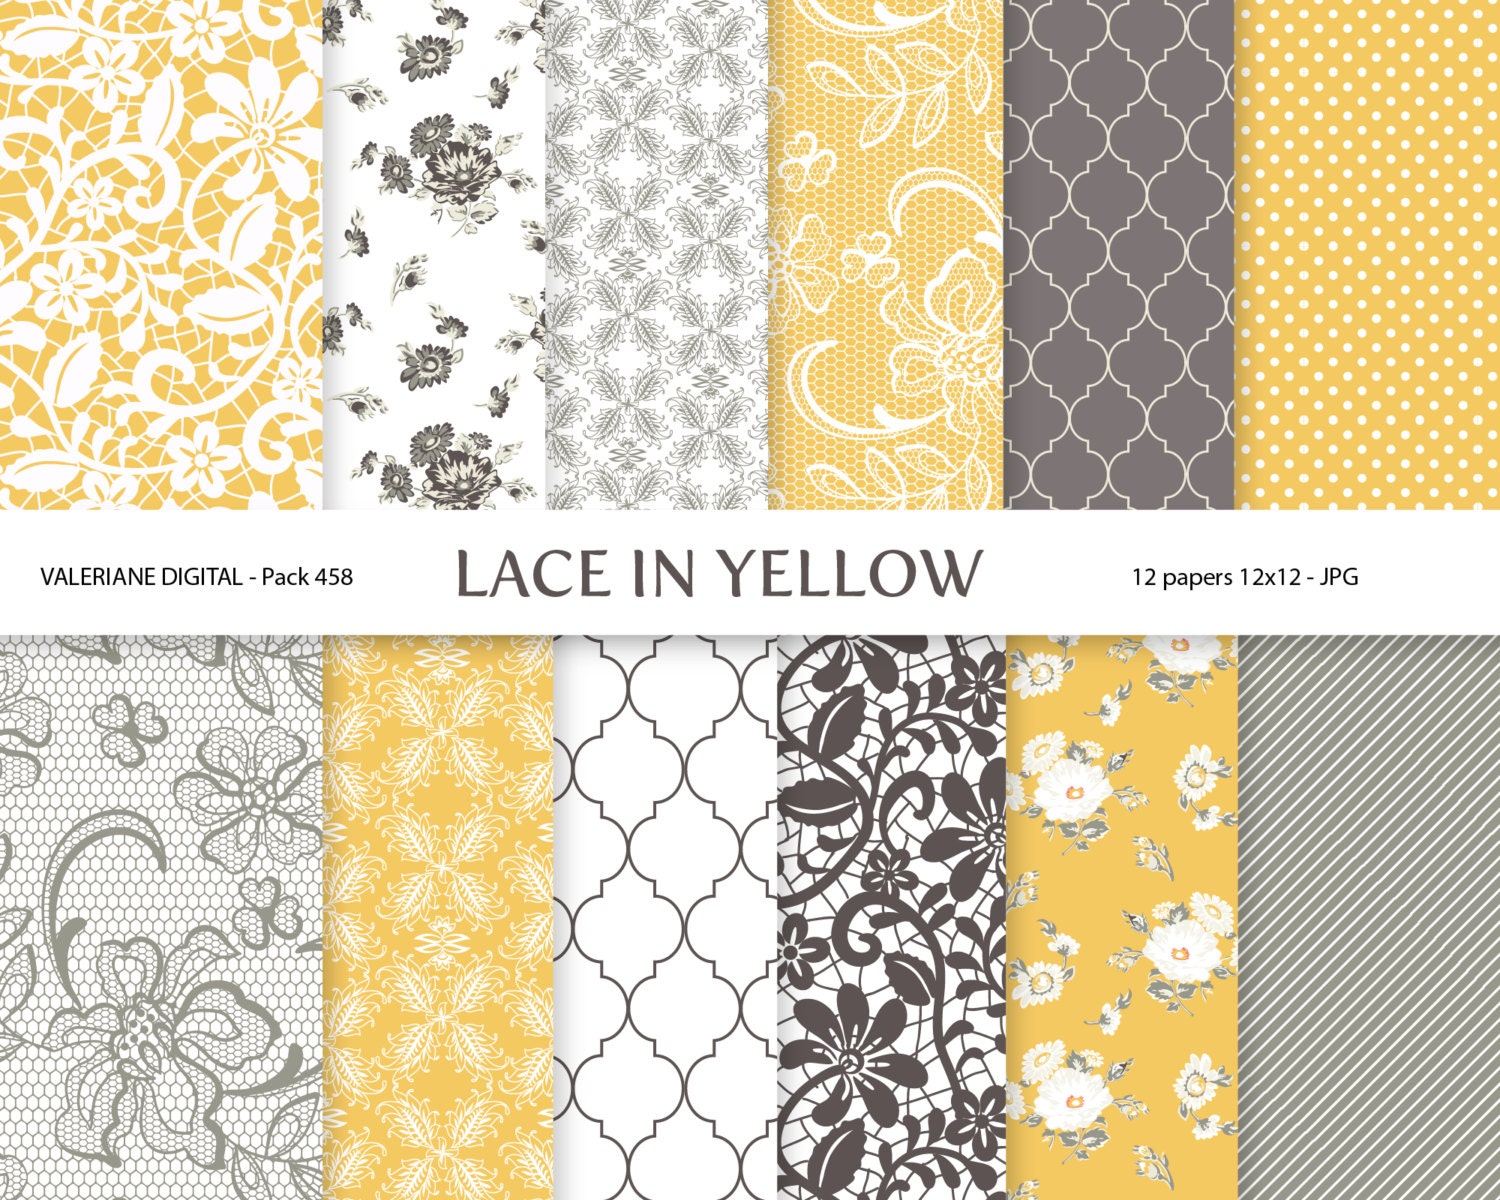 Scrapbook paper lace - Yellow And Grey Digital Paper Lace Scrapbook Paper 12 Jpg 12x12 Instant Download Pack 458